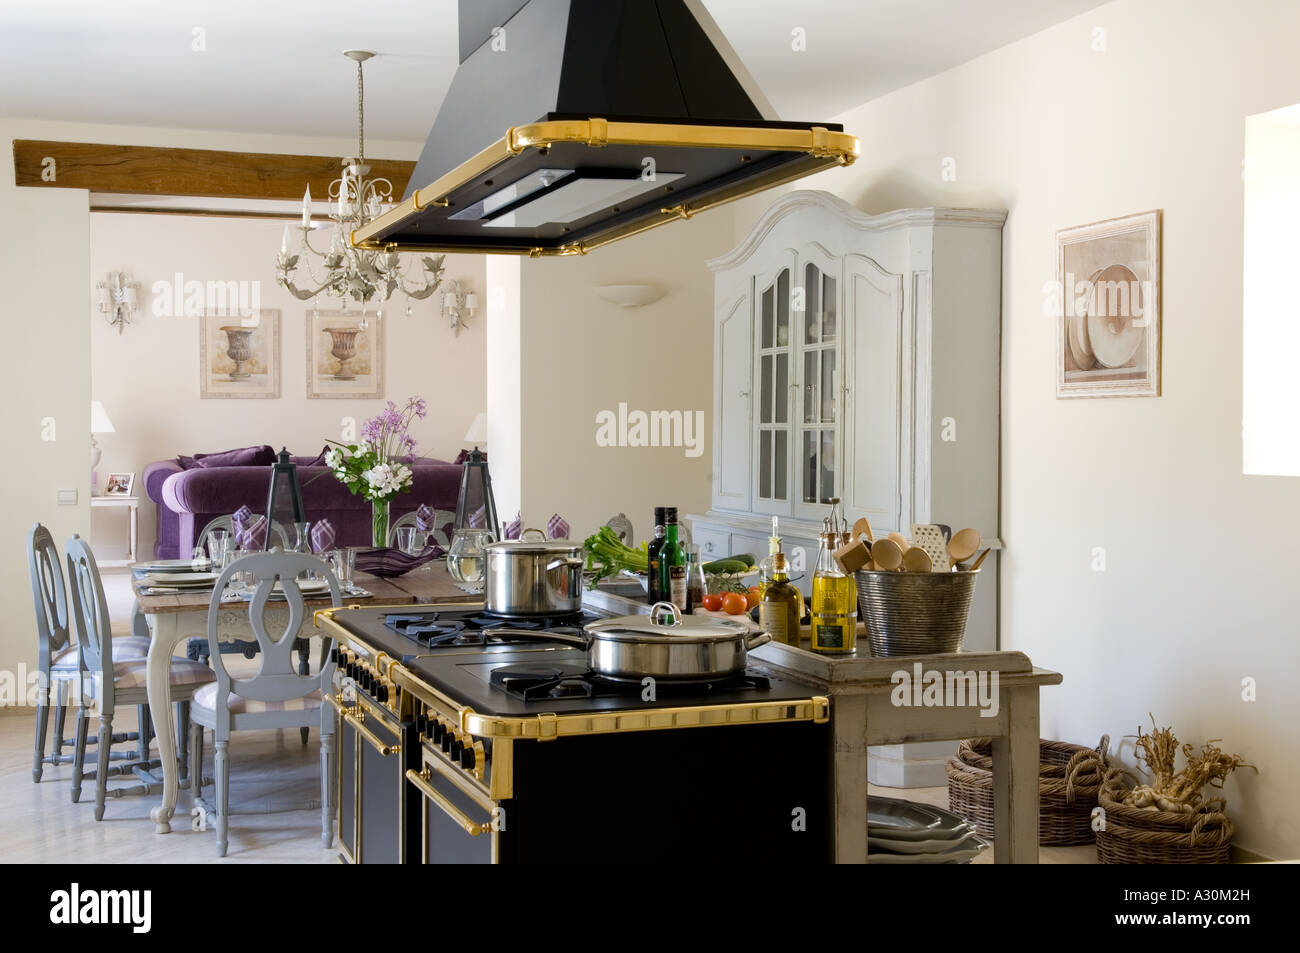 extractor stock photos extractor stock images alamy. Black Bedroom Furniture Sets. Home Design Ideas